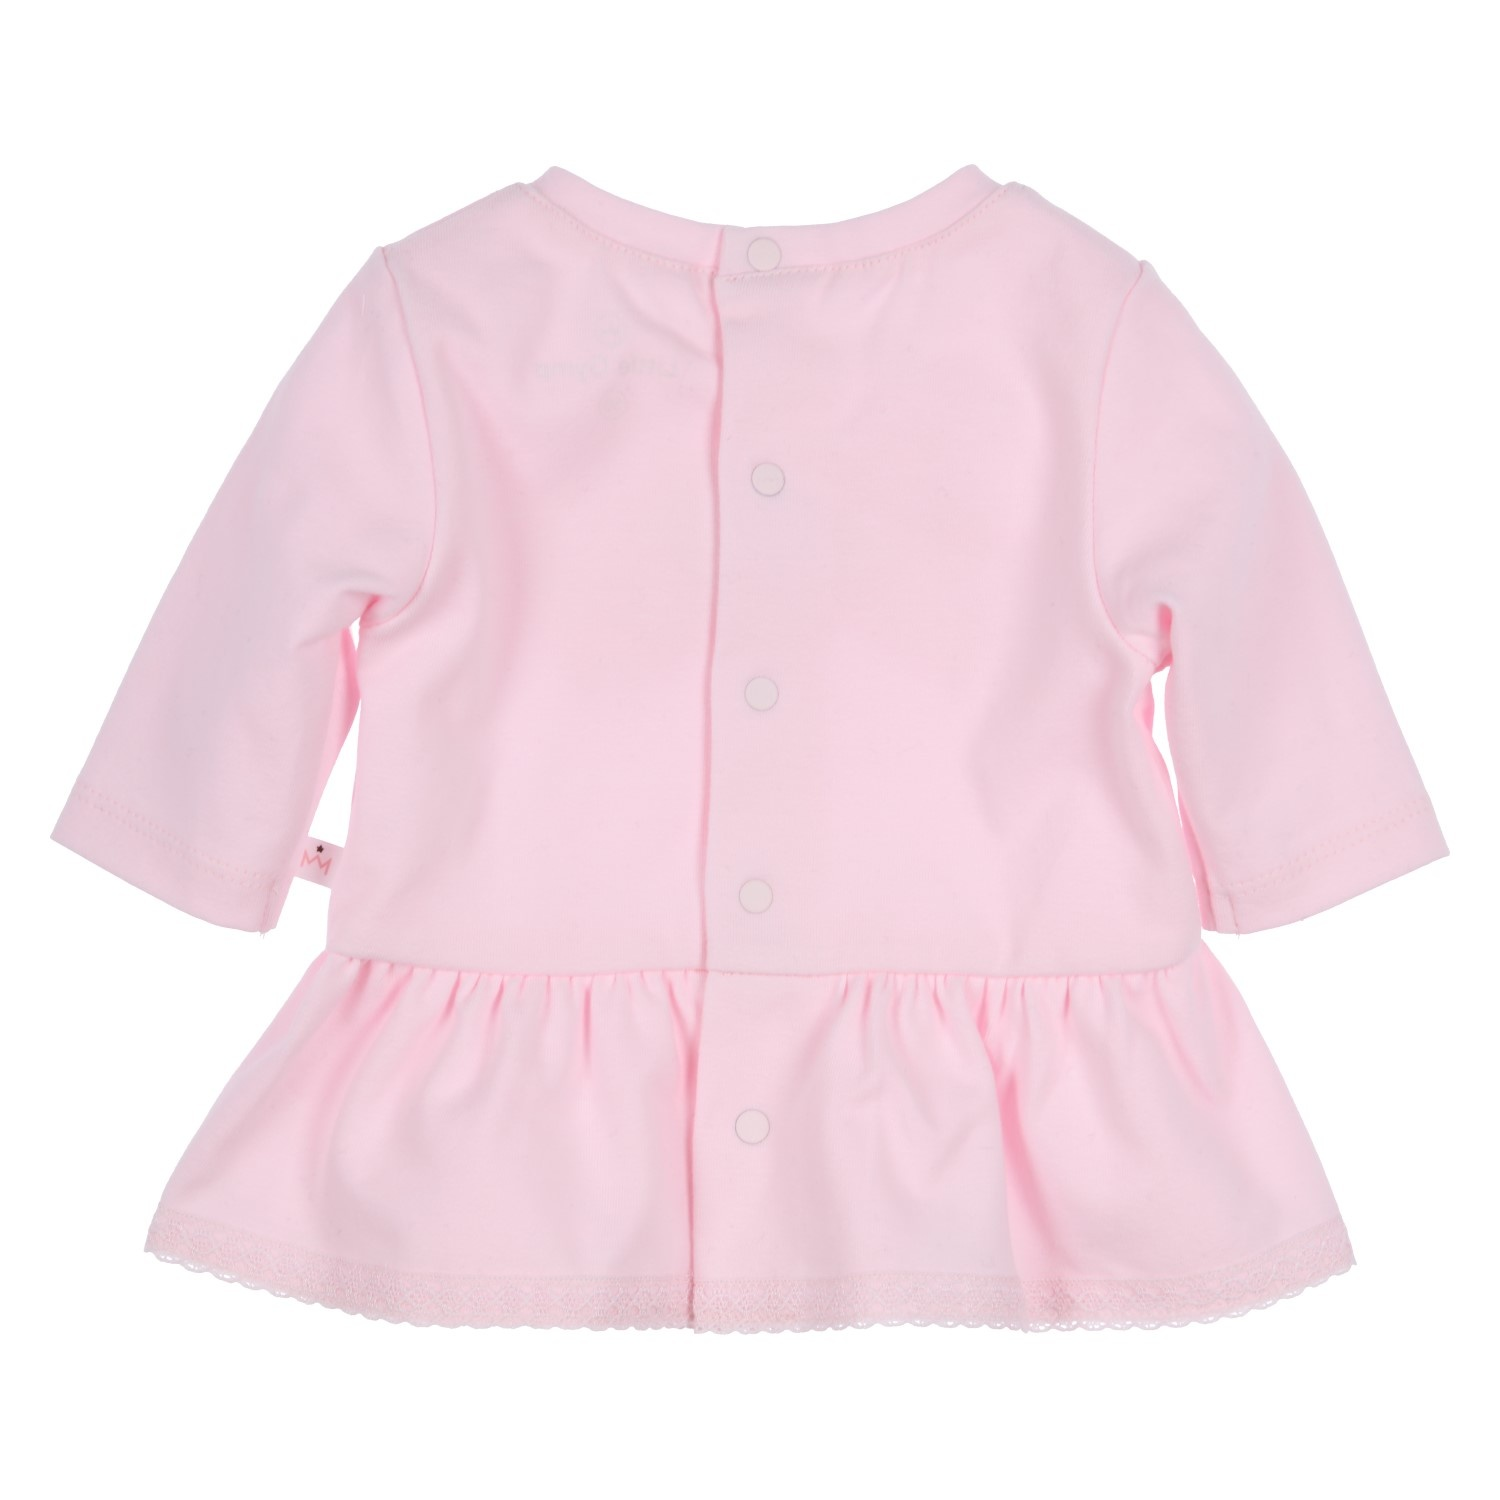 Gymp Gymp Pink Bow Tunic - 1562